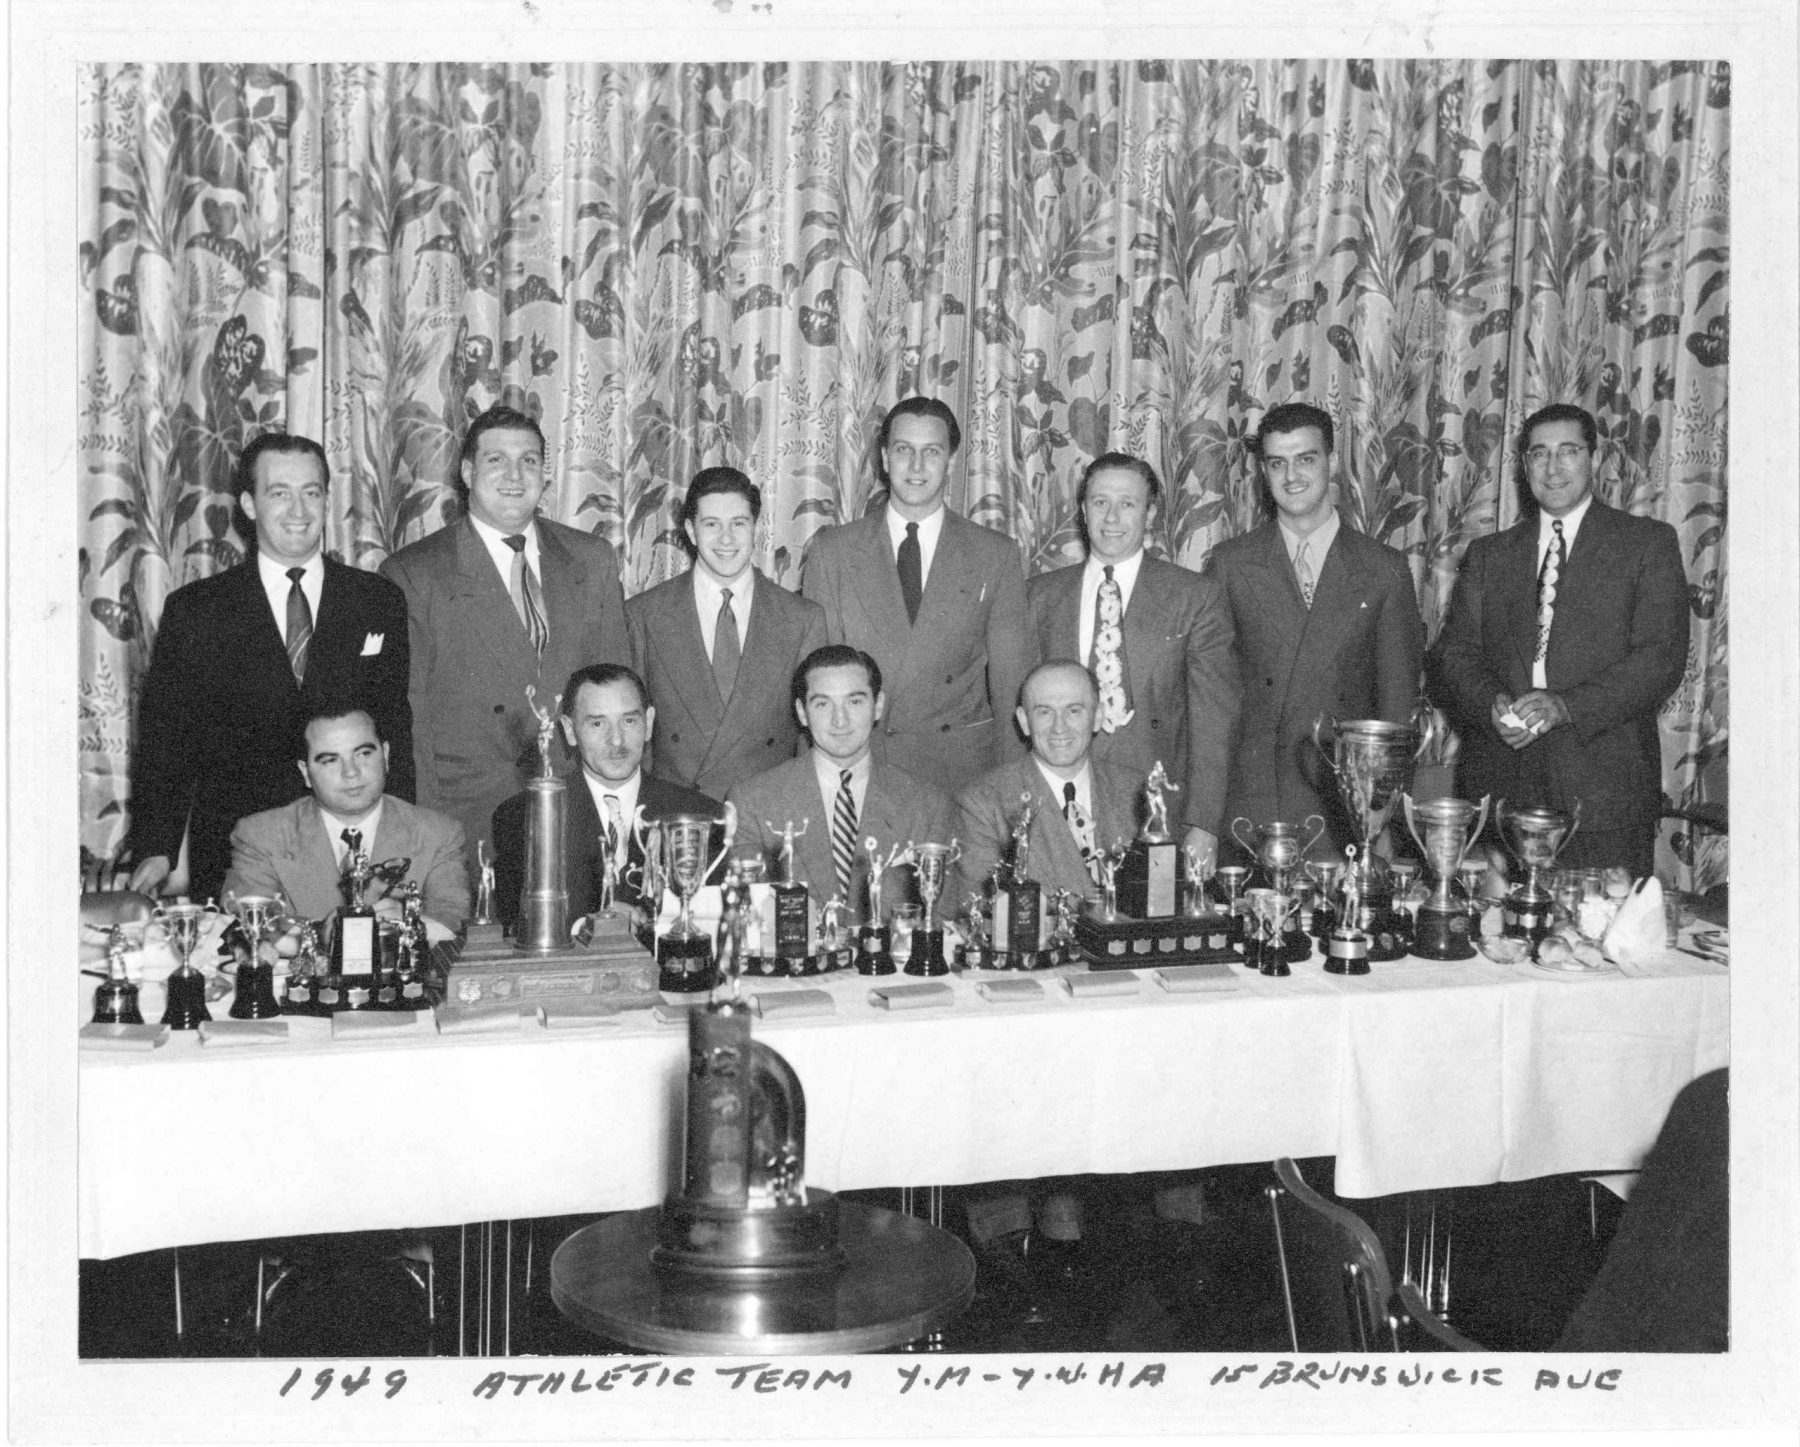 """1949 athletic awards banquet at the YM-YWHA building at 15 Brunswick Avenue. The banquet was held in 1950 to honour the """"Y"""" members for their athletic achievements during 1949.The YM-YWHA building facilities accommodated a wide range of sports. The athletic programs were robust and well organized, and an athletic membership only cost approximately twenty-five dollars per year.   OJA, item 3412."""